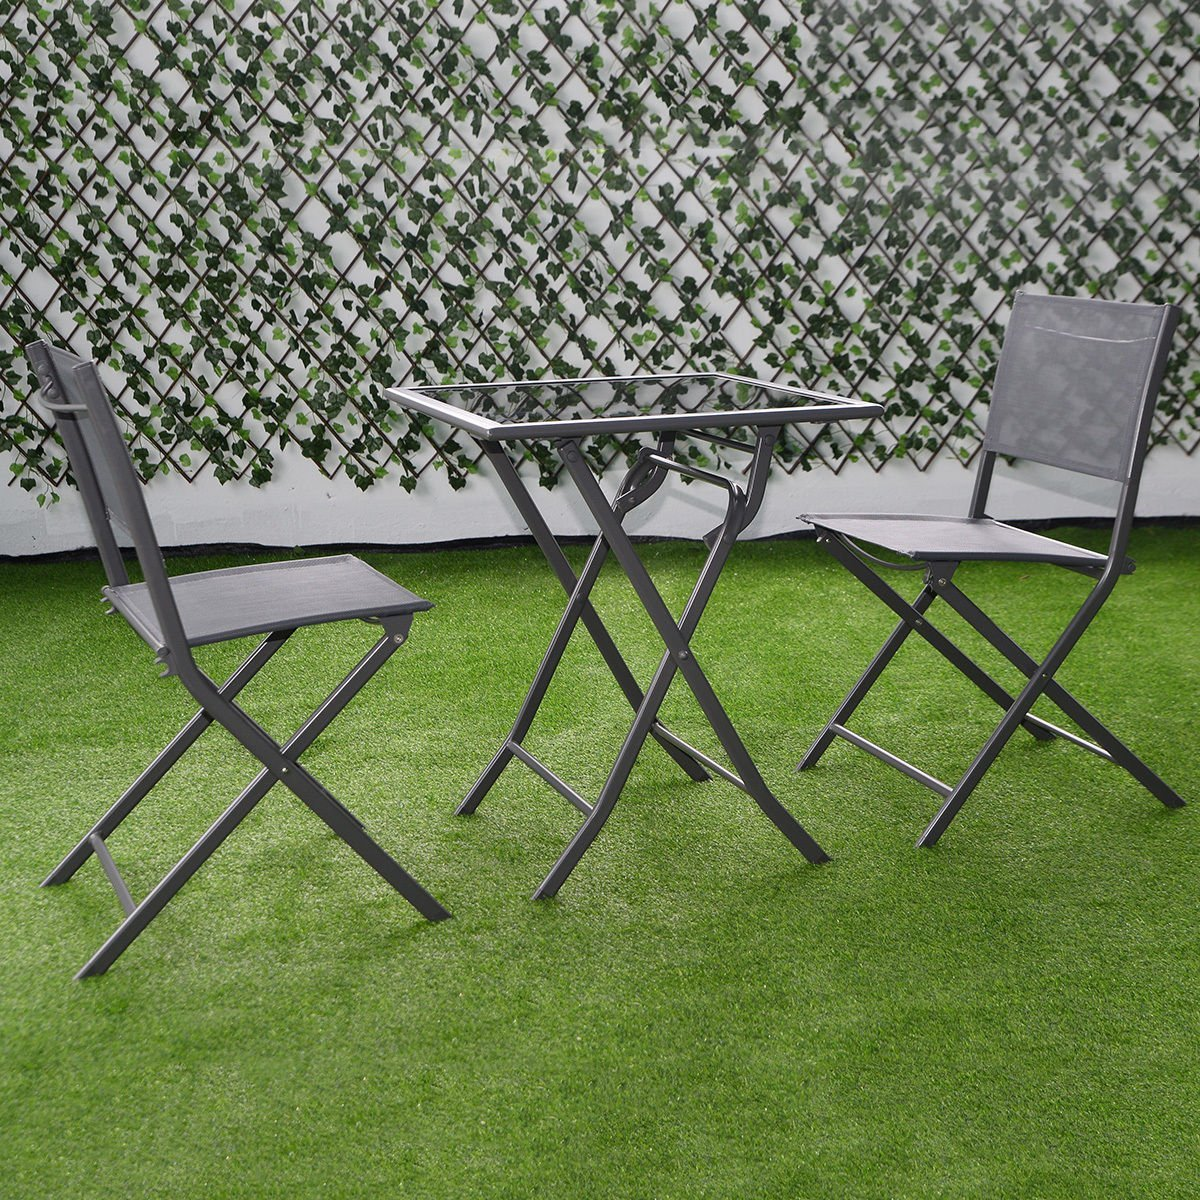 Amazon.com: Giantex 3 Pcs Bistro Set Garden Backyard Table Chairs Outdoor  Patio Furniture Folding: Garden U0026 Outdoor